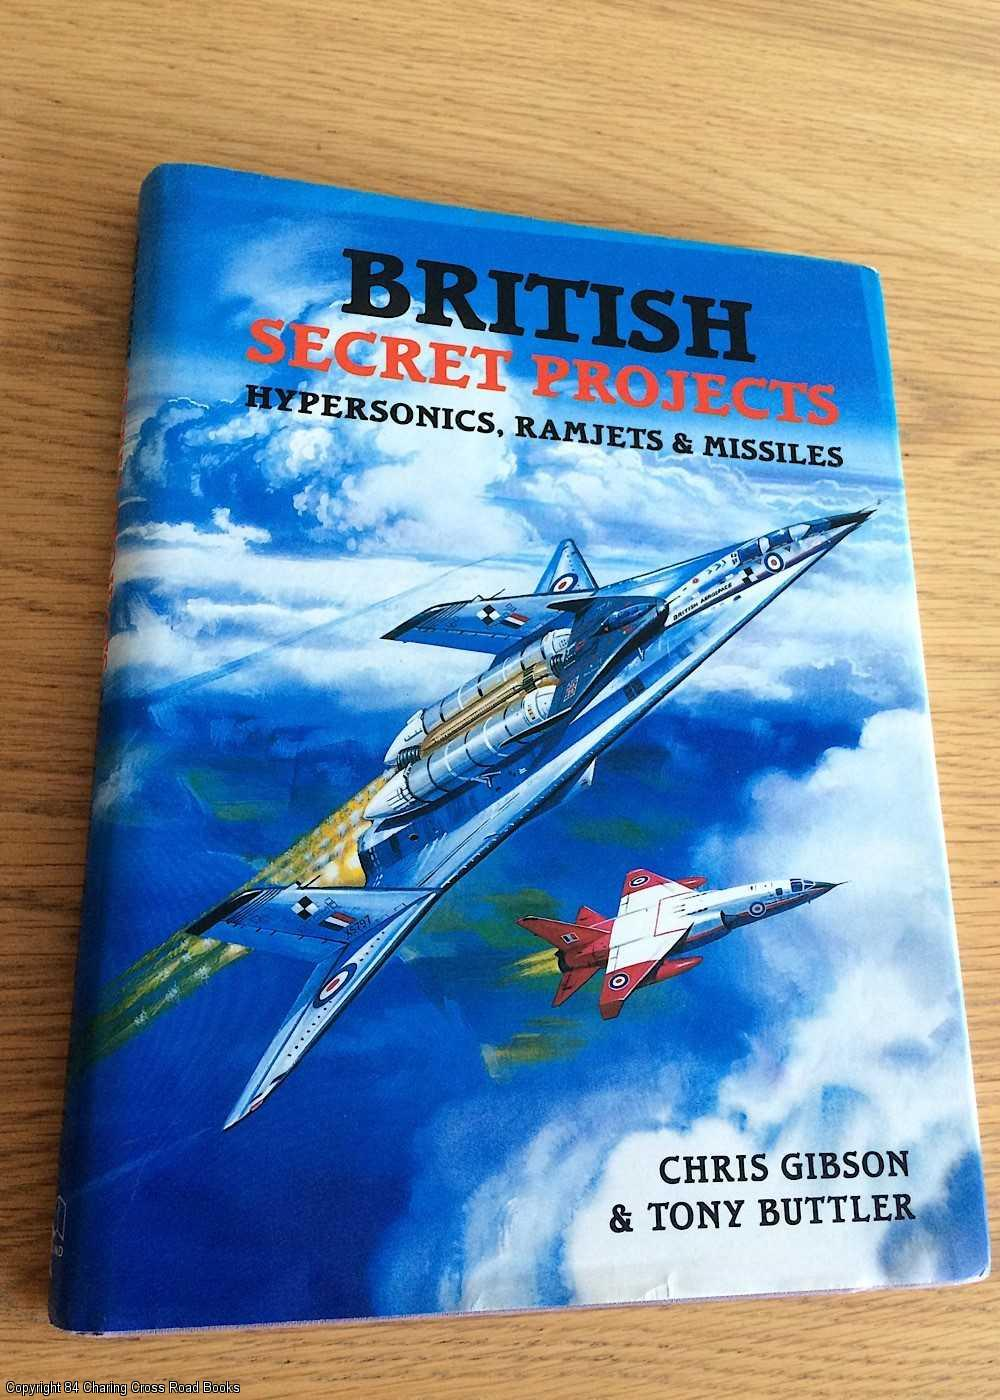 TONY BUTTLER, CHRIS GIBSON - British Secret Projects: Hypersonics, Ramjets and Missiles